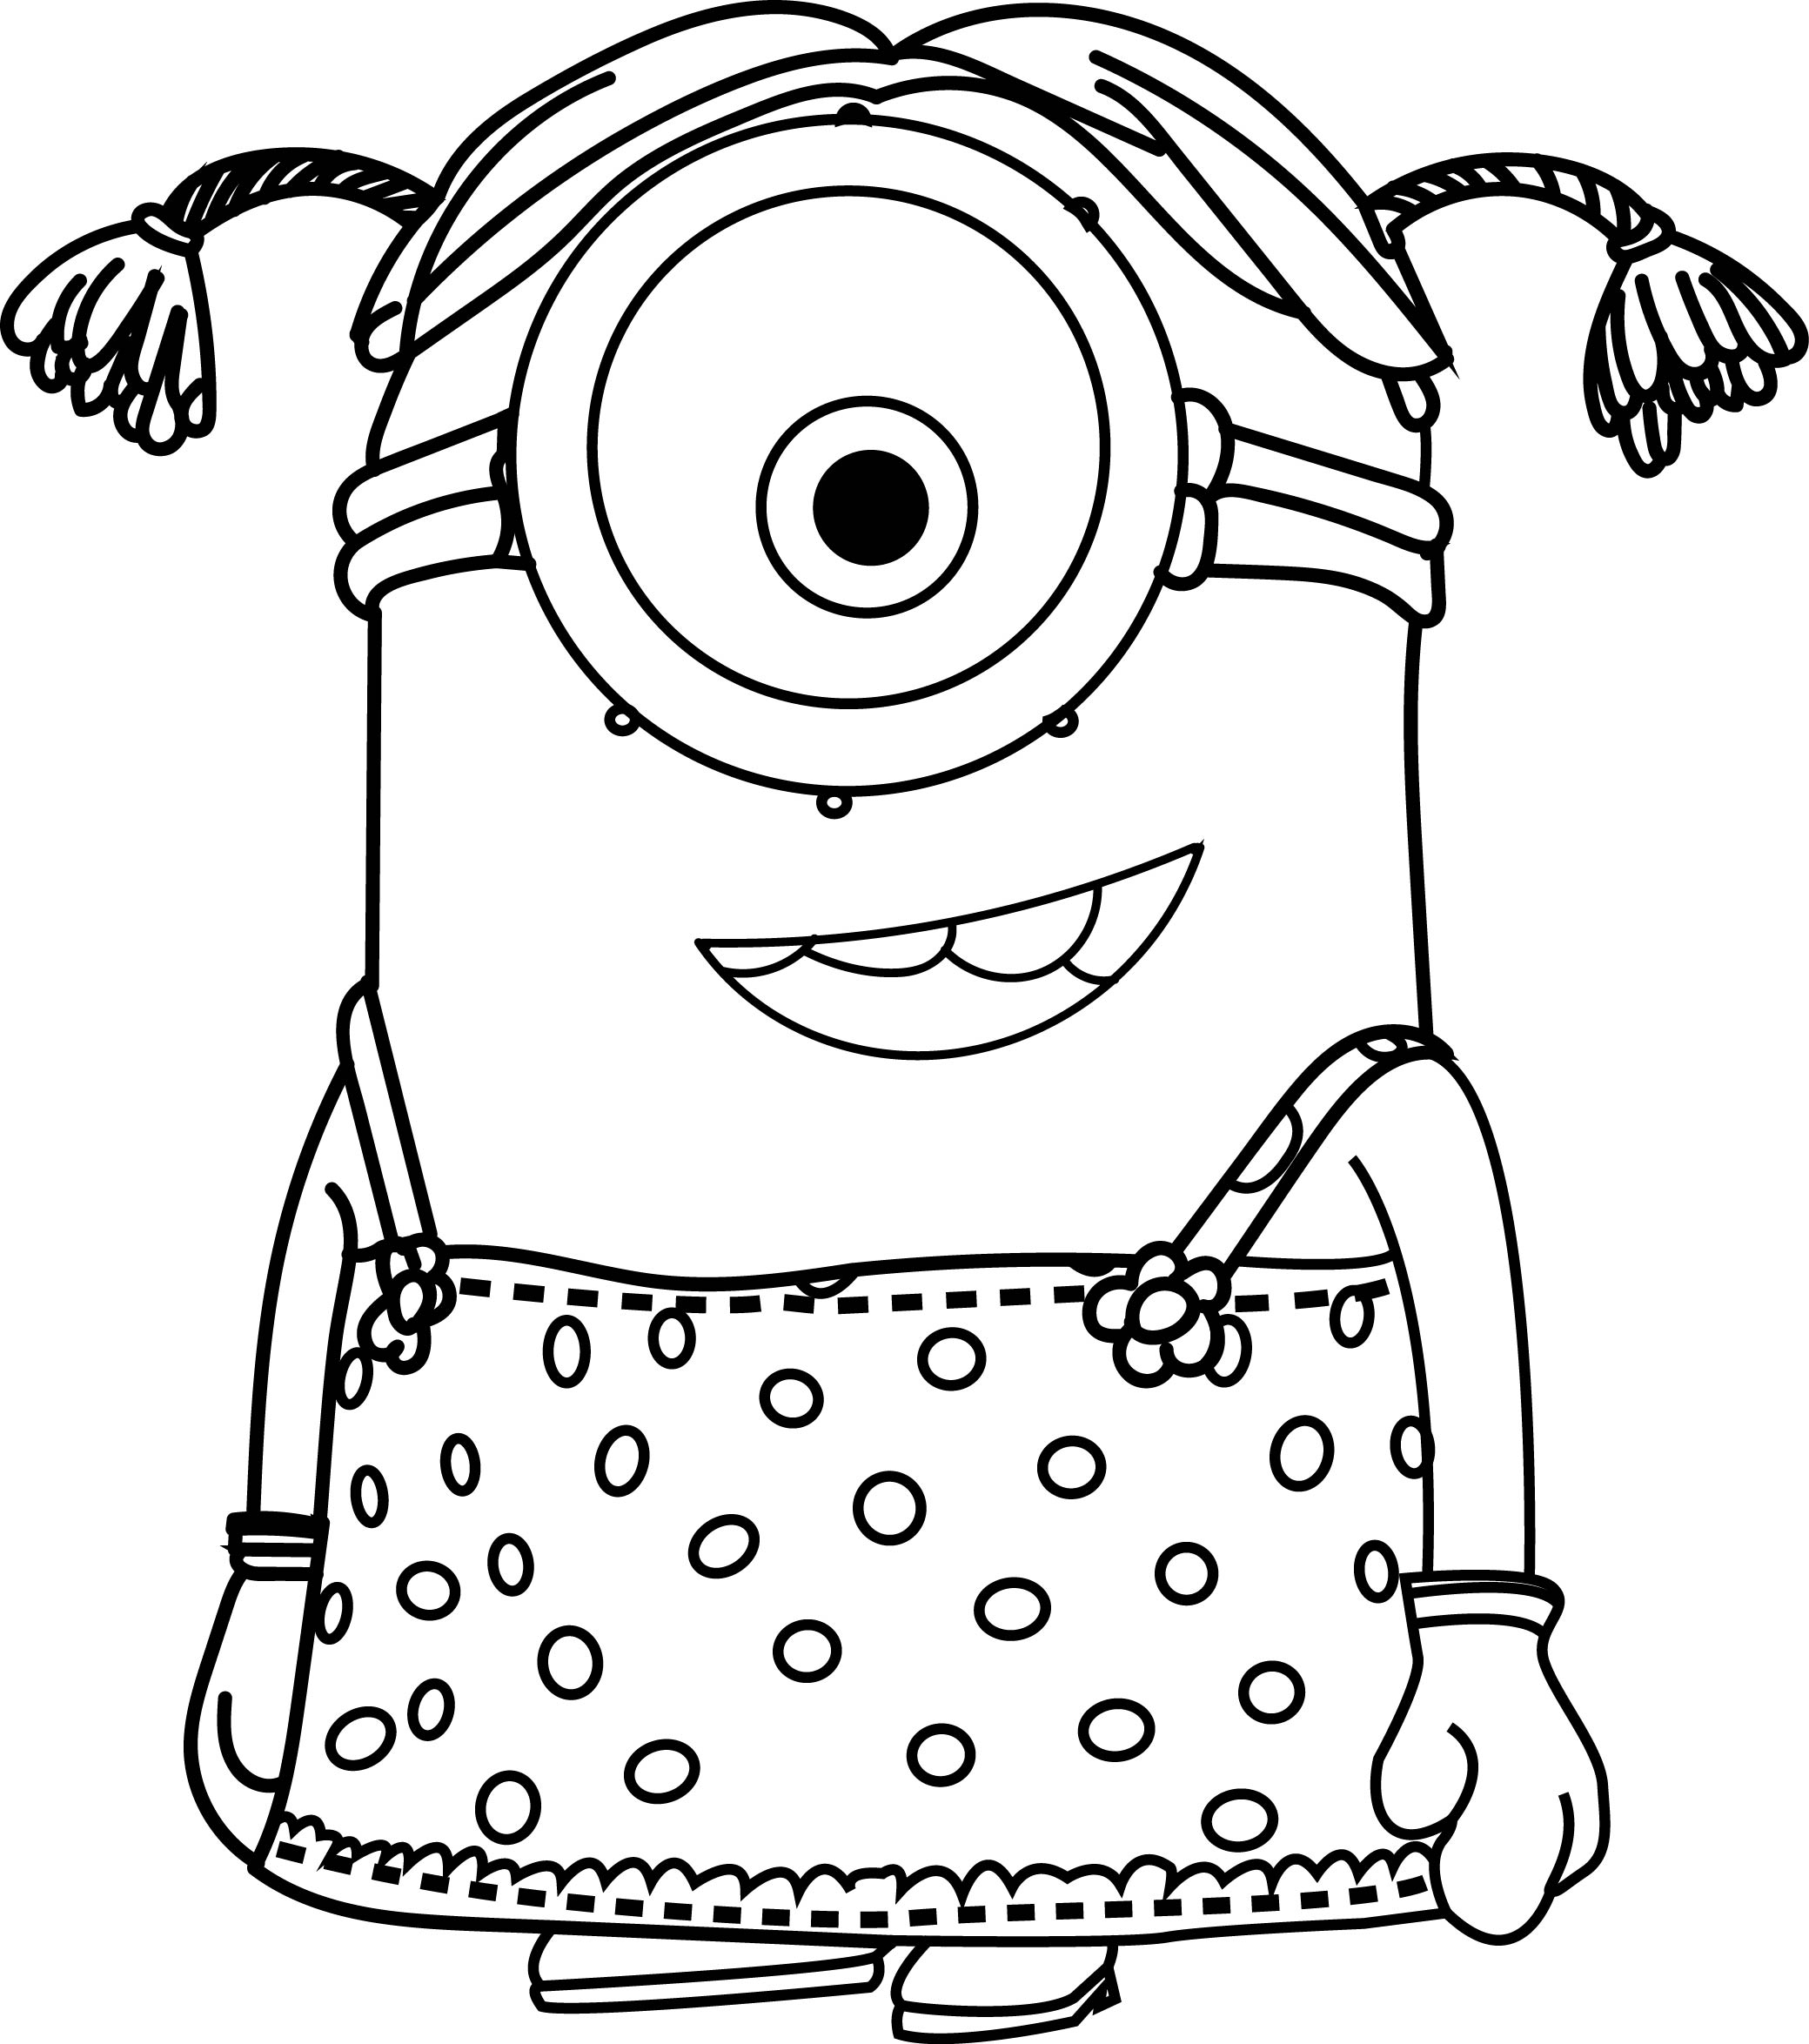 minions print coloring star content uploads 2017 happy halloween pages minions print